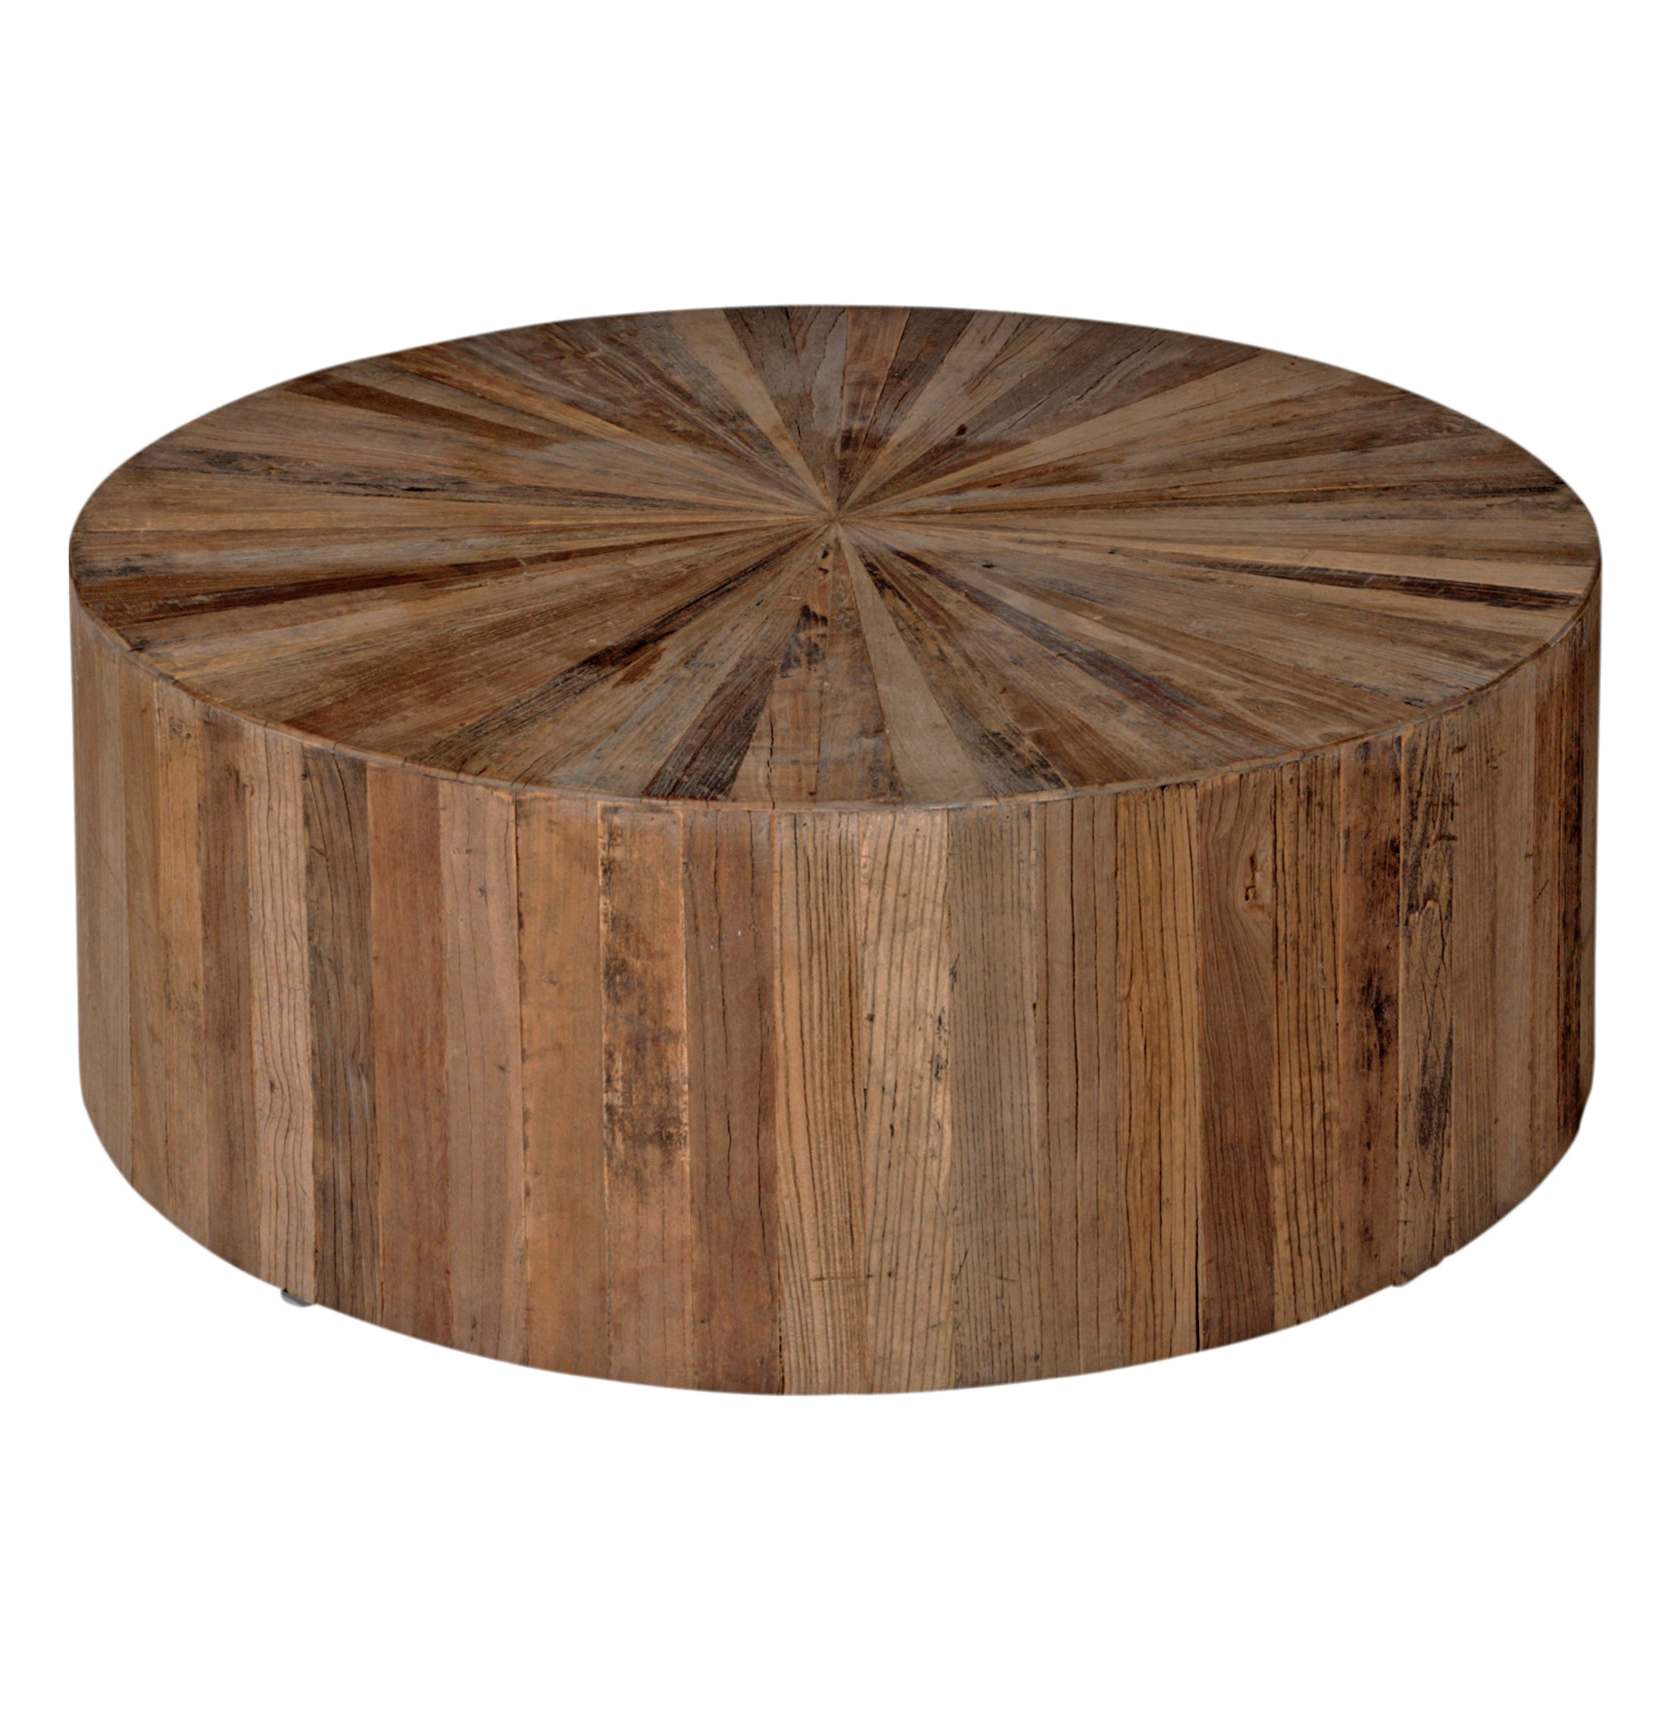 Popular Round Carved Wood Coffee Tables Within Designer Coffee Tables – Eclectic Coffee Tables (View 13 of 20)